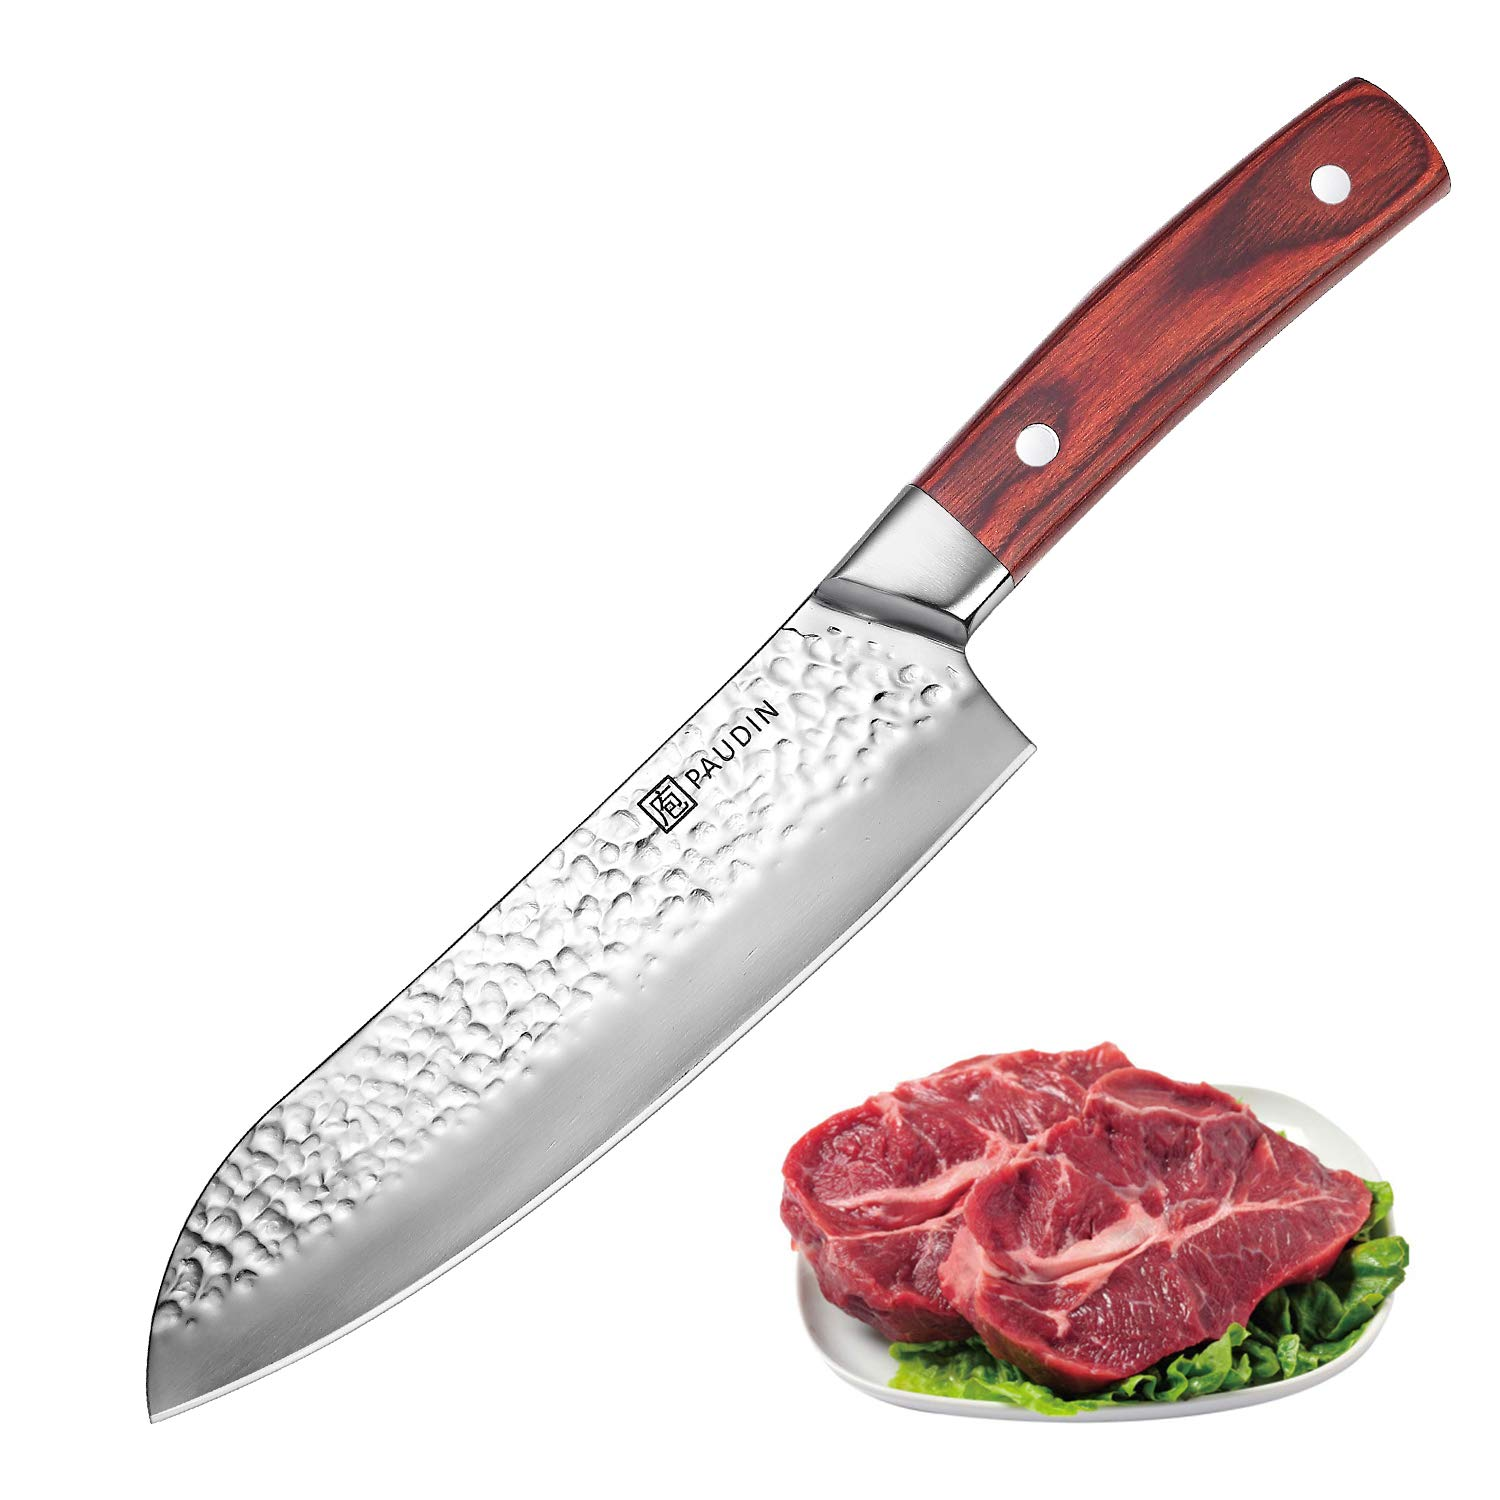 Santoku Knife 7 Inch, PAUDIN Pro kitchen knife High Carbon German Stainless Steel 7Cr17Mov Hammered Pattern, Sharp Knife with Ergonomic Pakka Wood Handle by PAUDIN (Image #1)